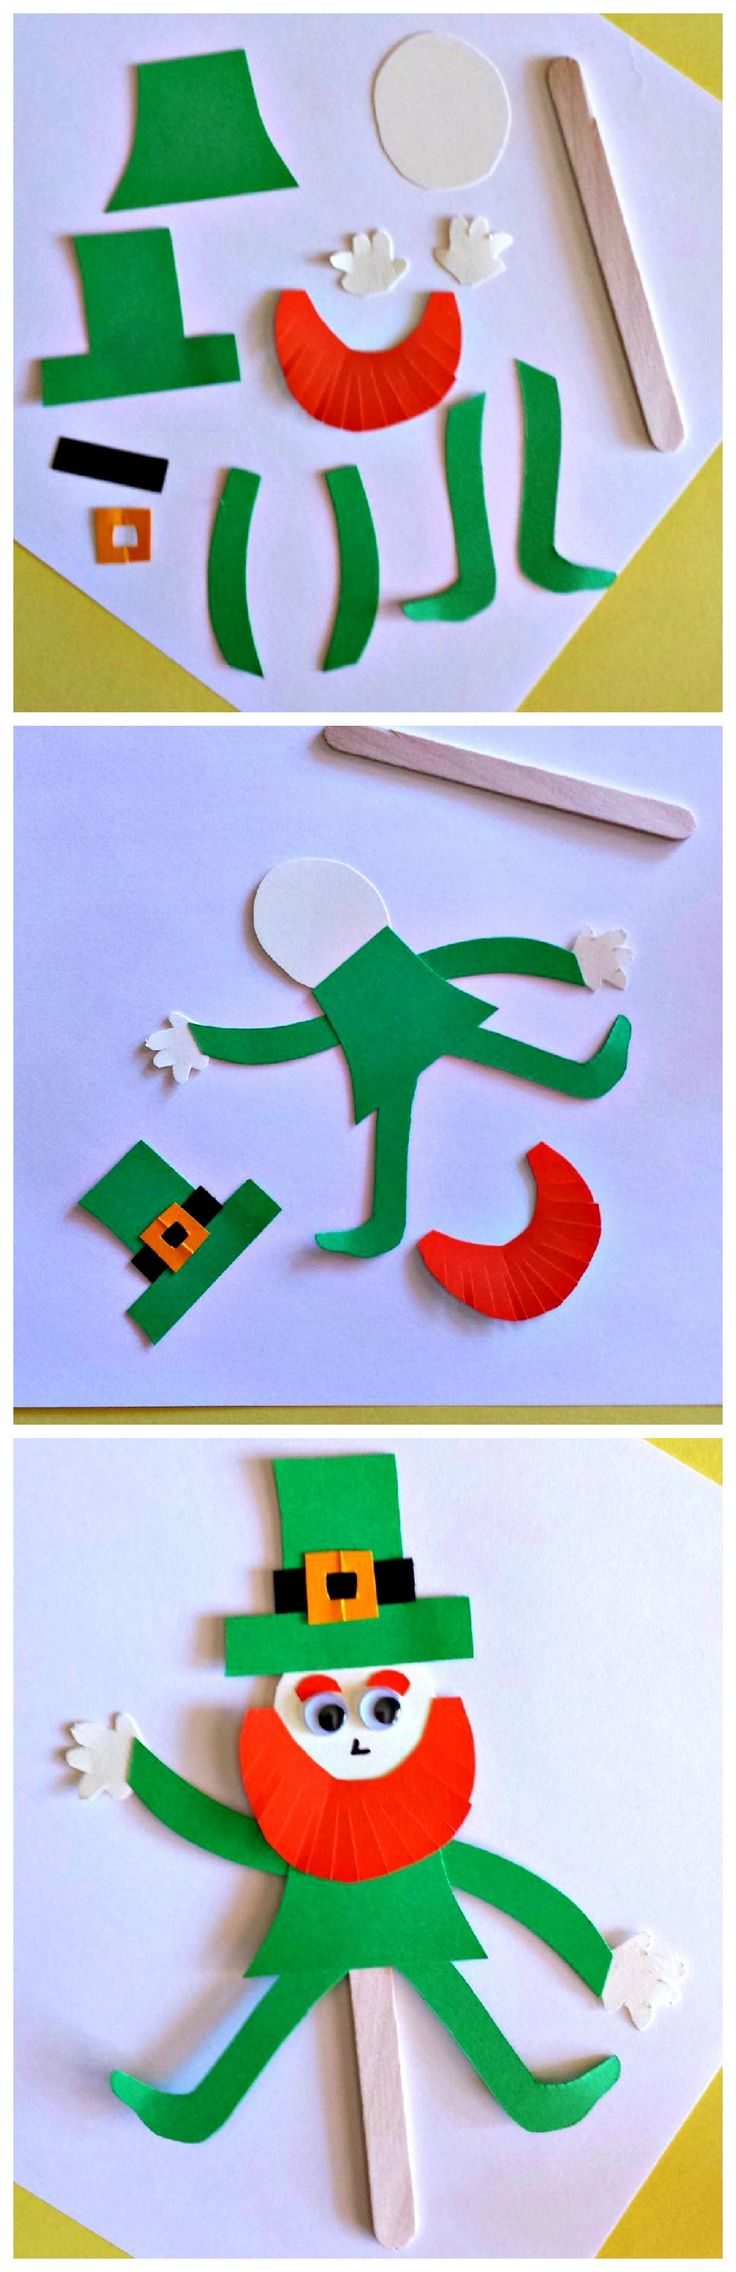 Popsicle Stick Leprechaun puppet for kids!  #art project #St Patricks Day craft | CraftyMorning.com